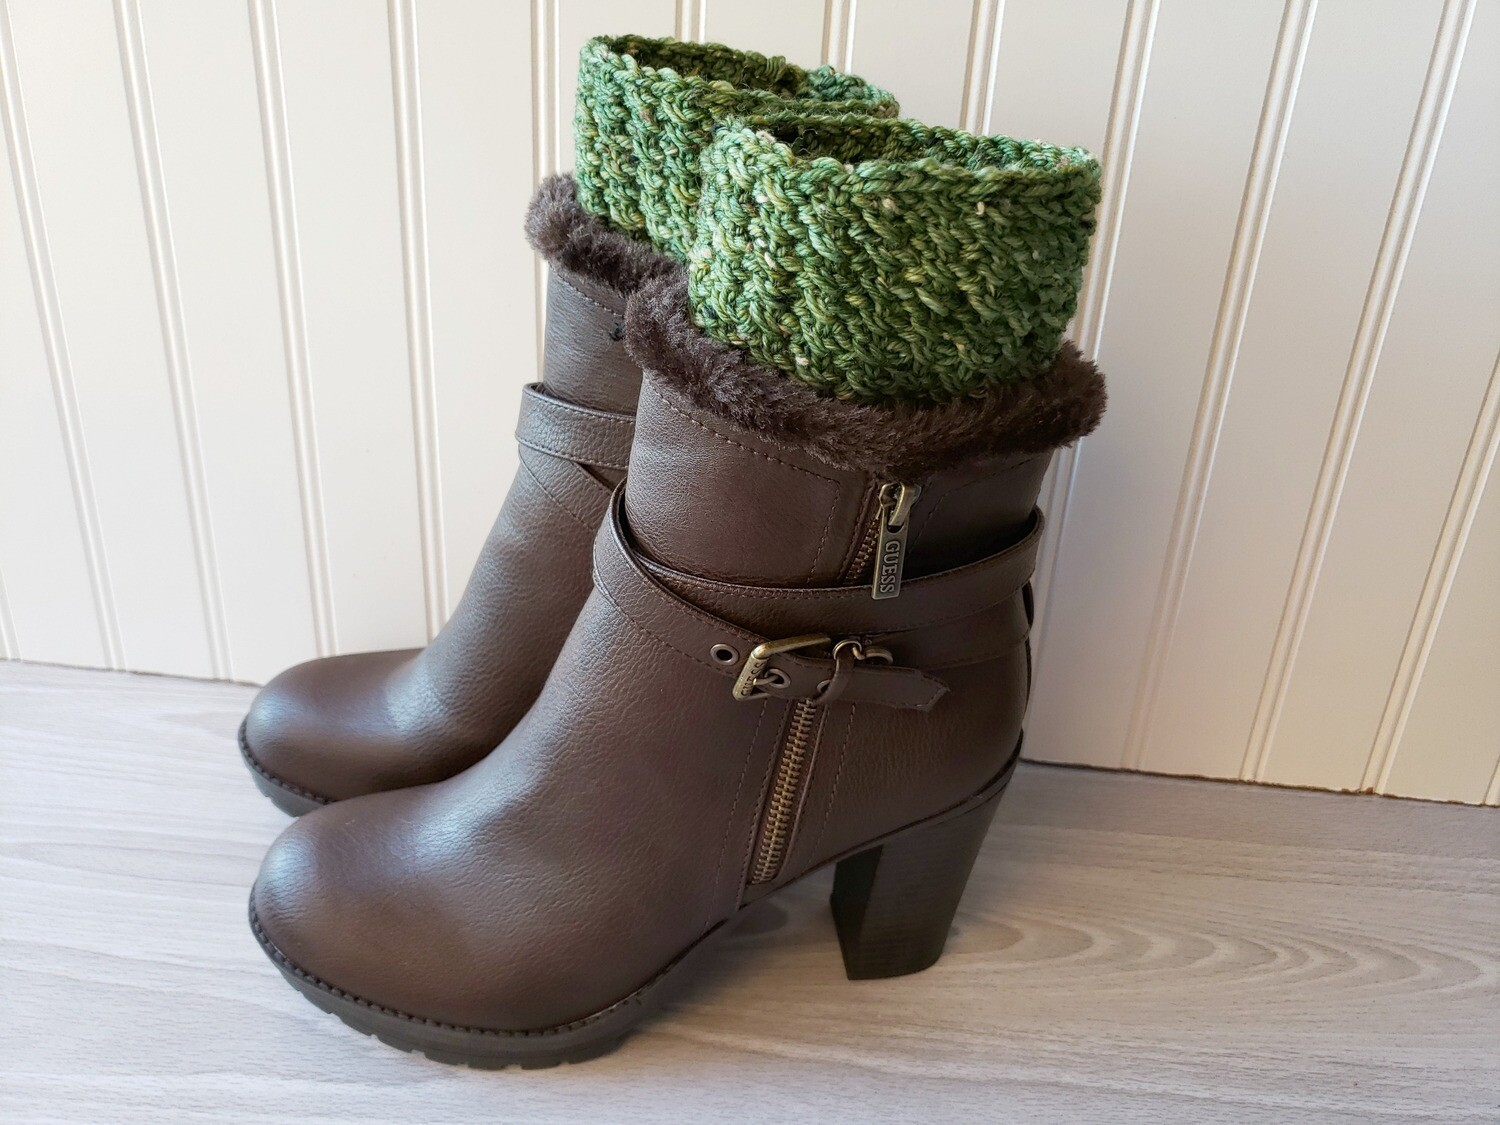 Willow Boot Cuffs Crochet Pattern